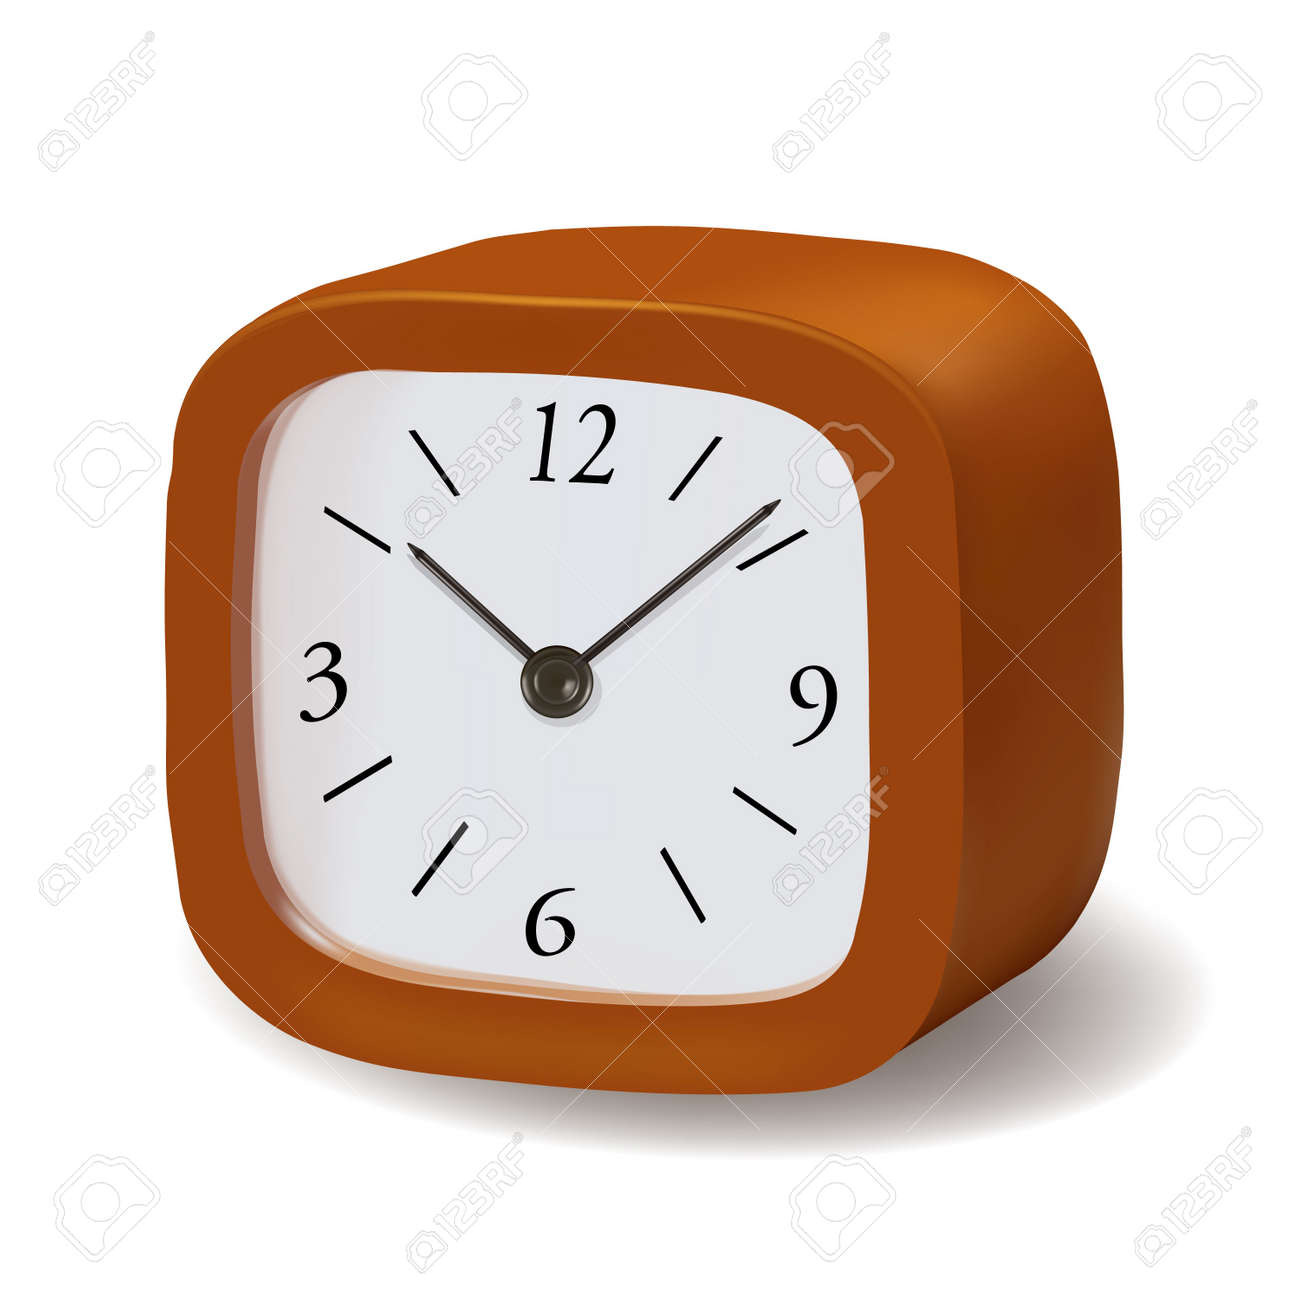 fashioned clock isolated on a white background. Vector. Stock Vector - 10105295